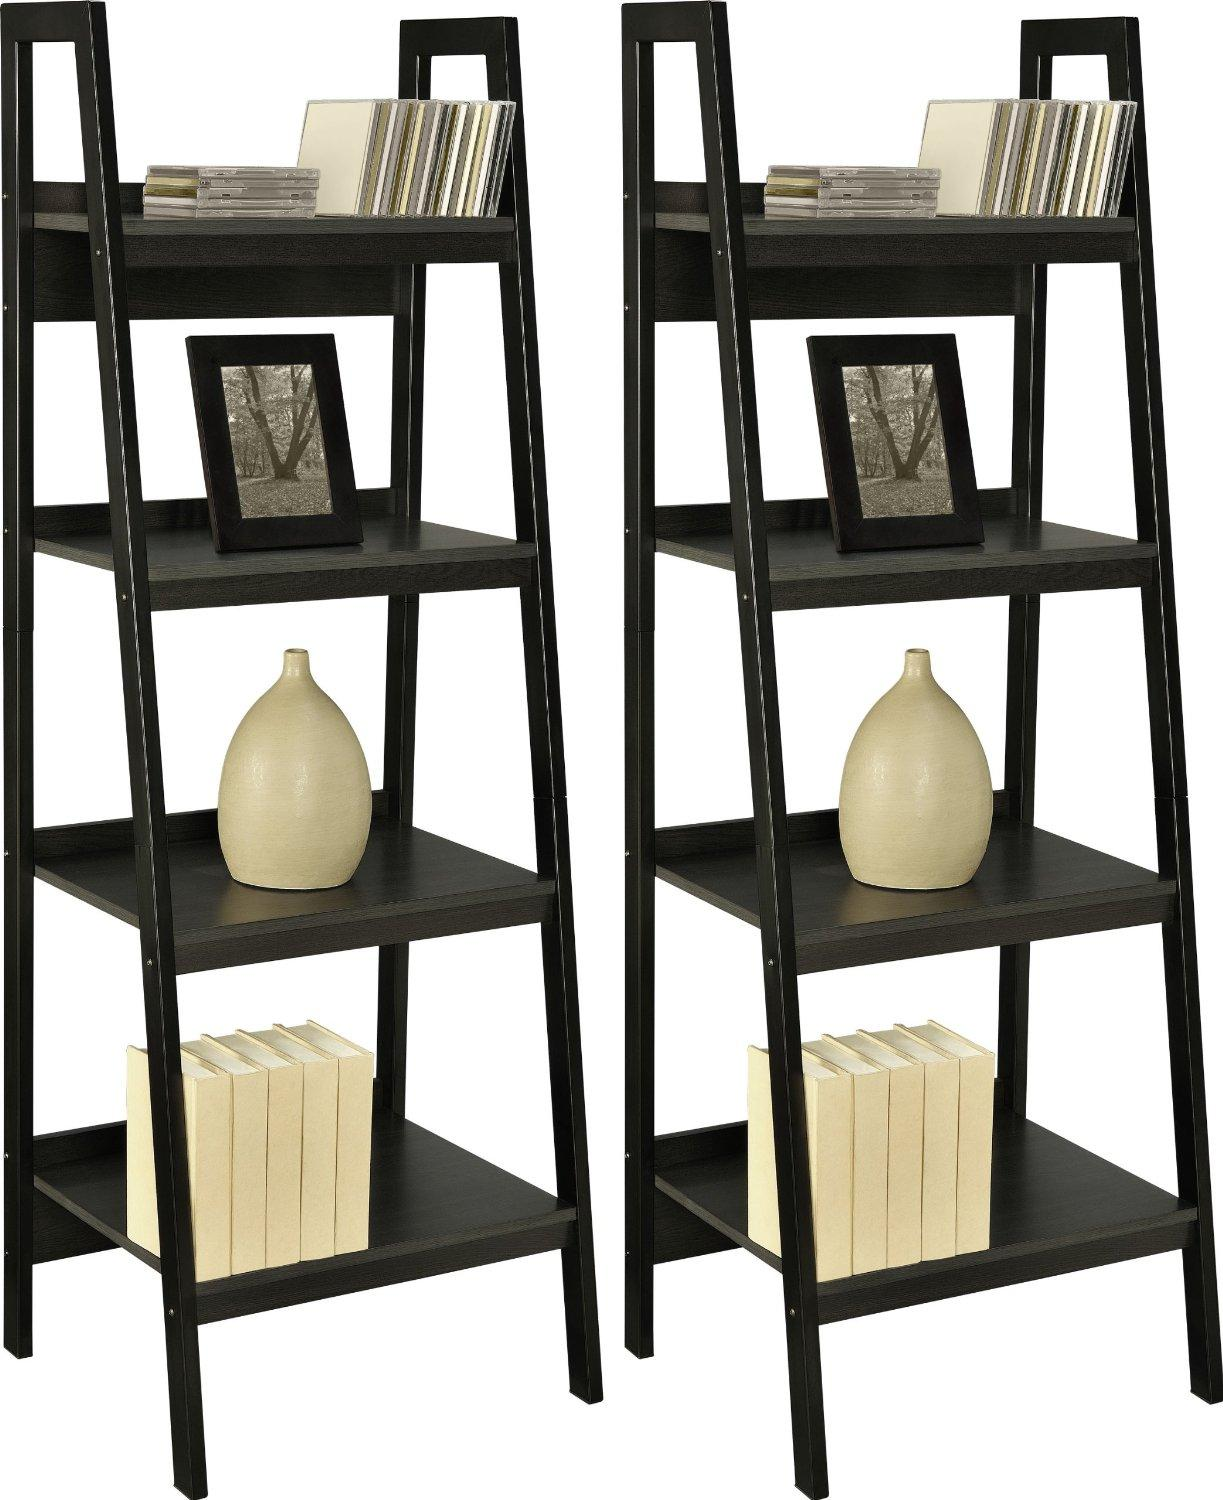 $89 Altra Furniture Metal Frame Bundle Bookcase Ladder, Black, Set of 2